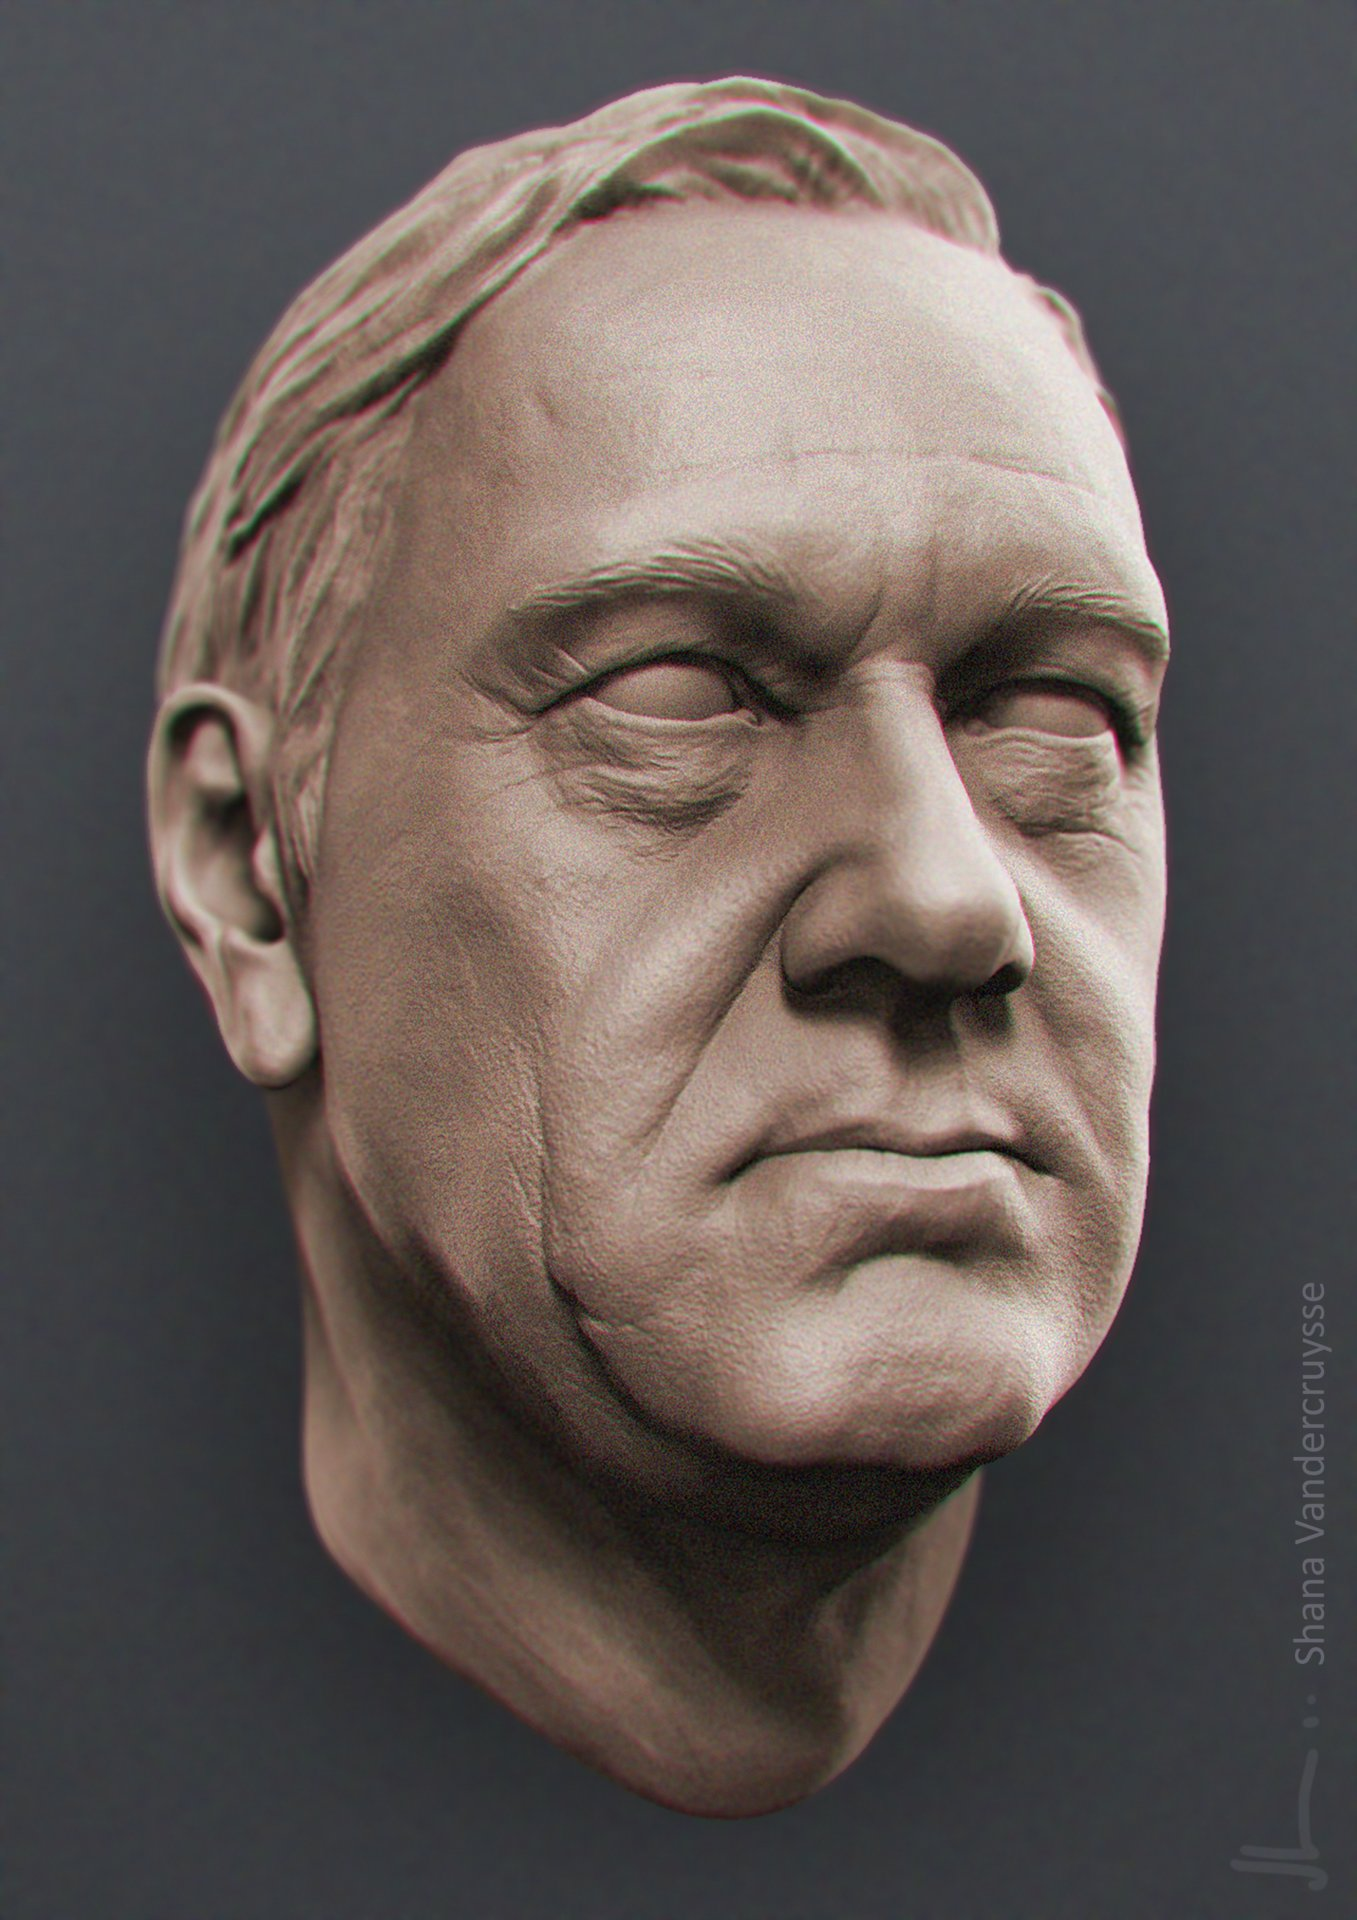 Shana vandercruysse kevinspacey clay final